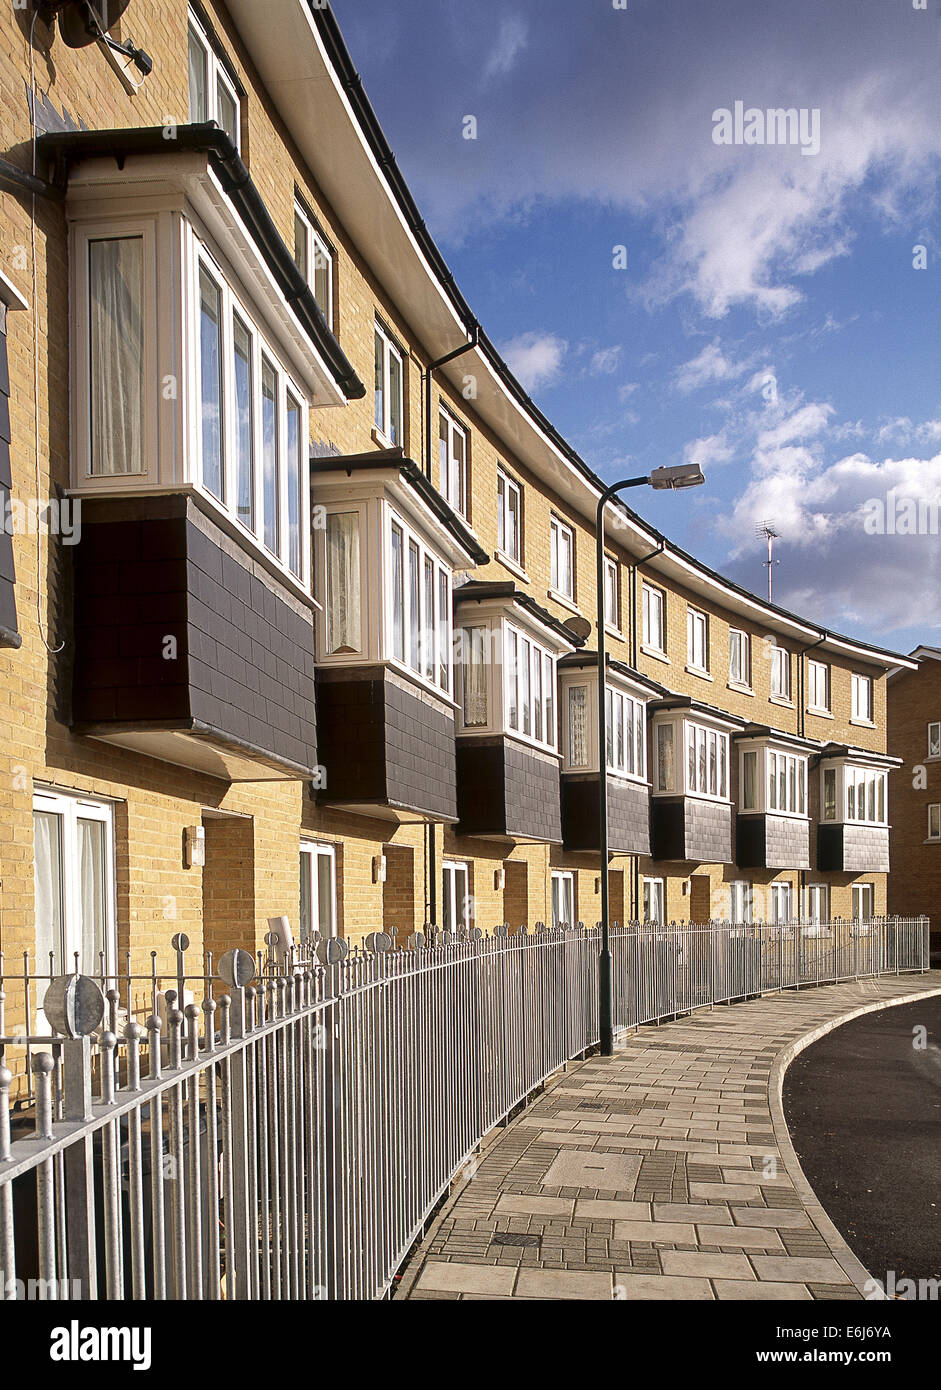 Terraced housing in Neasden, London. Stock Photo